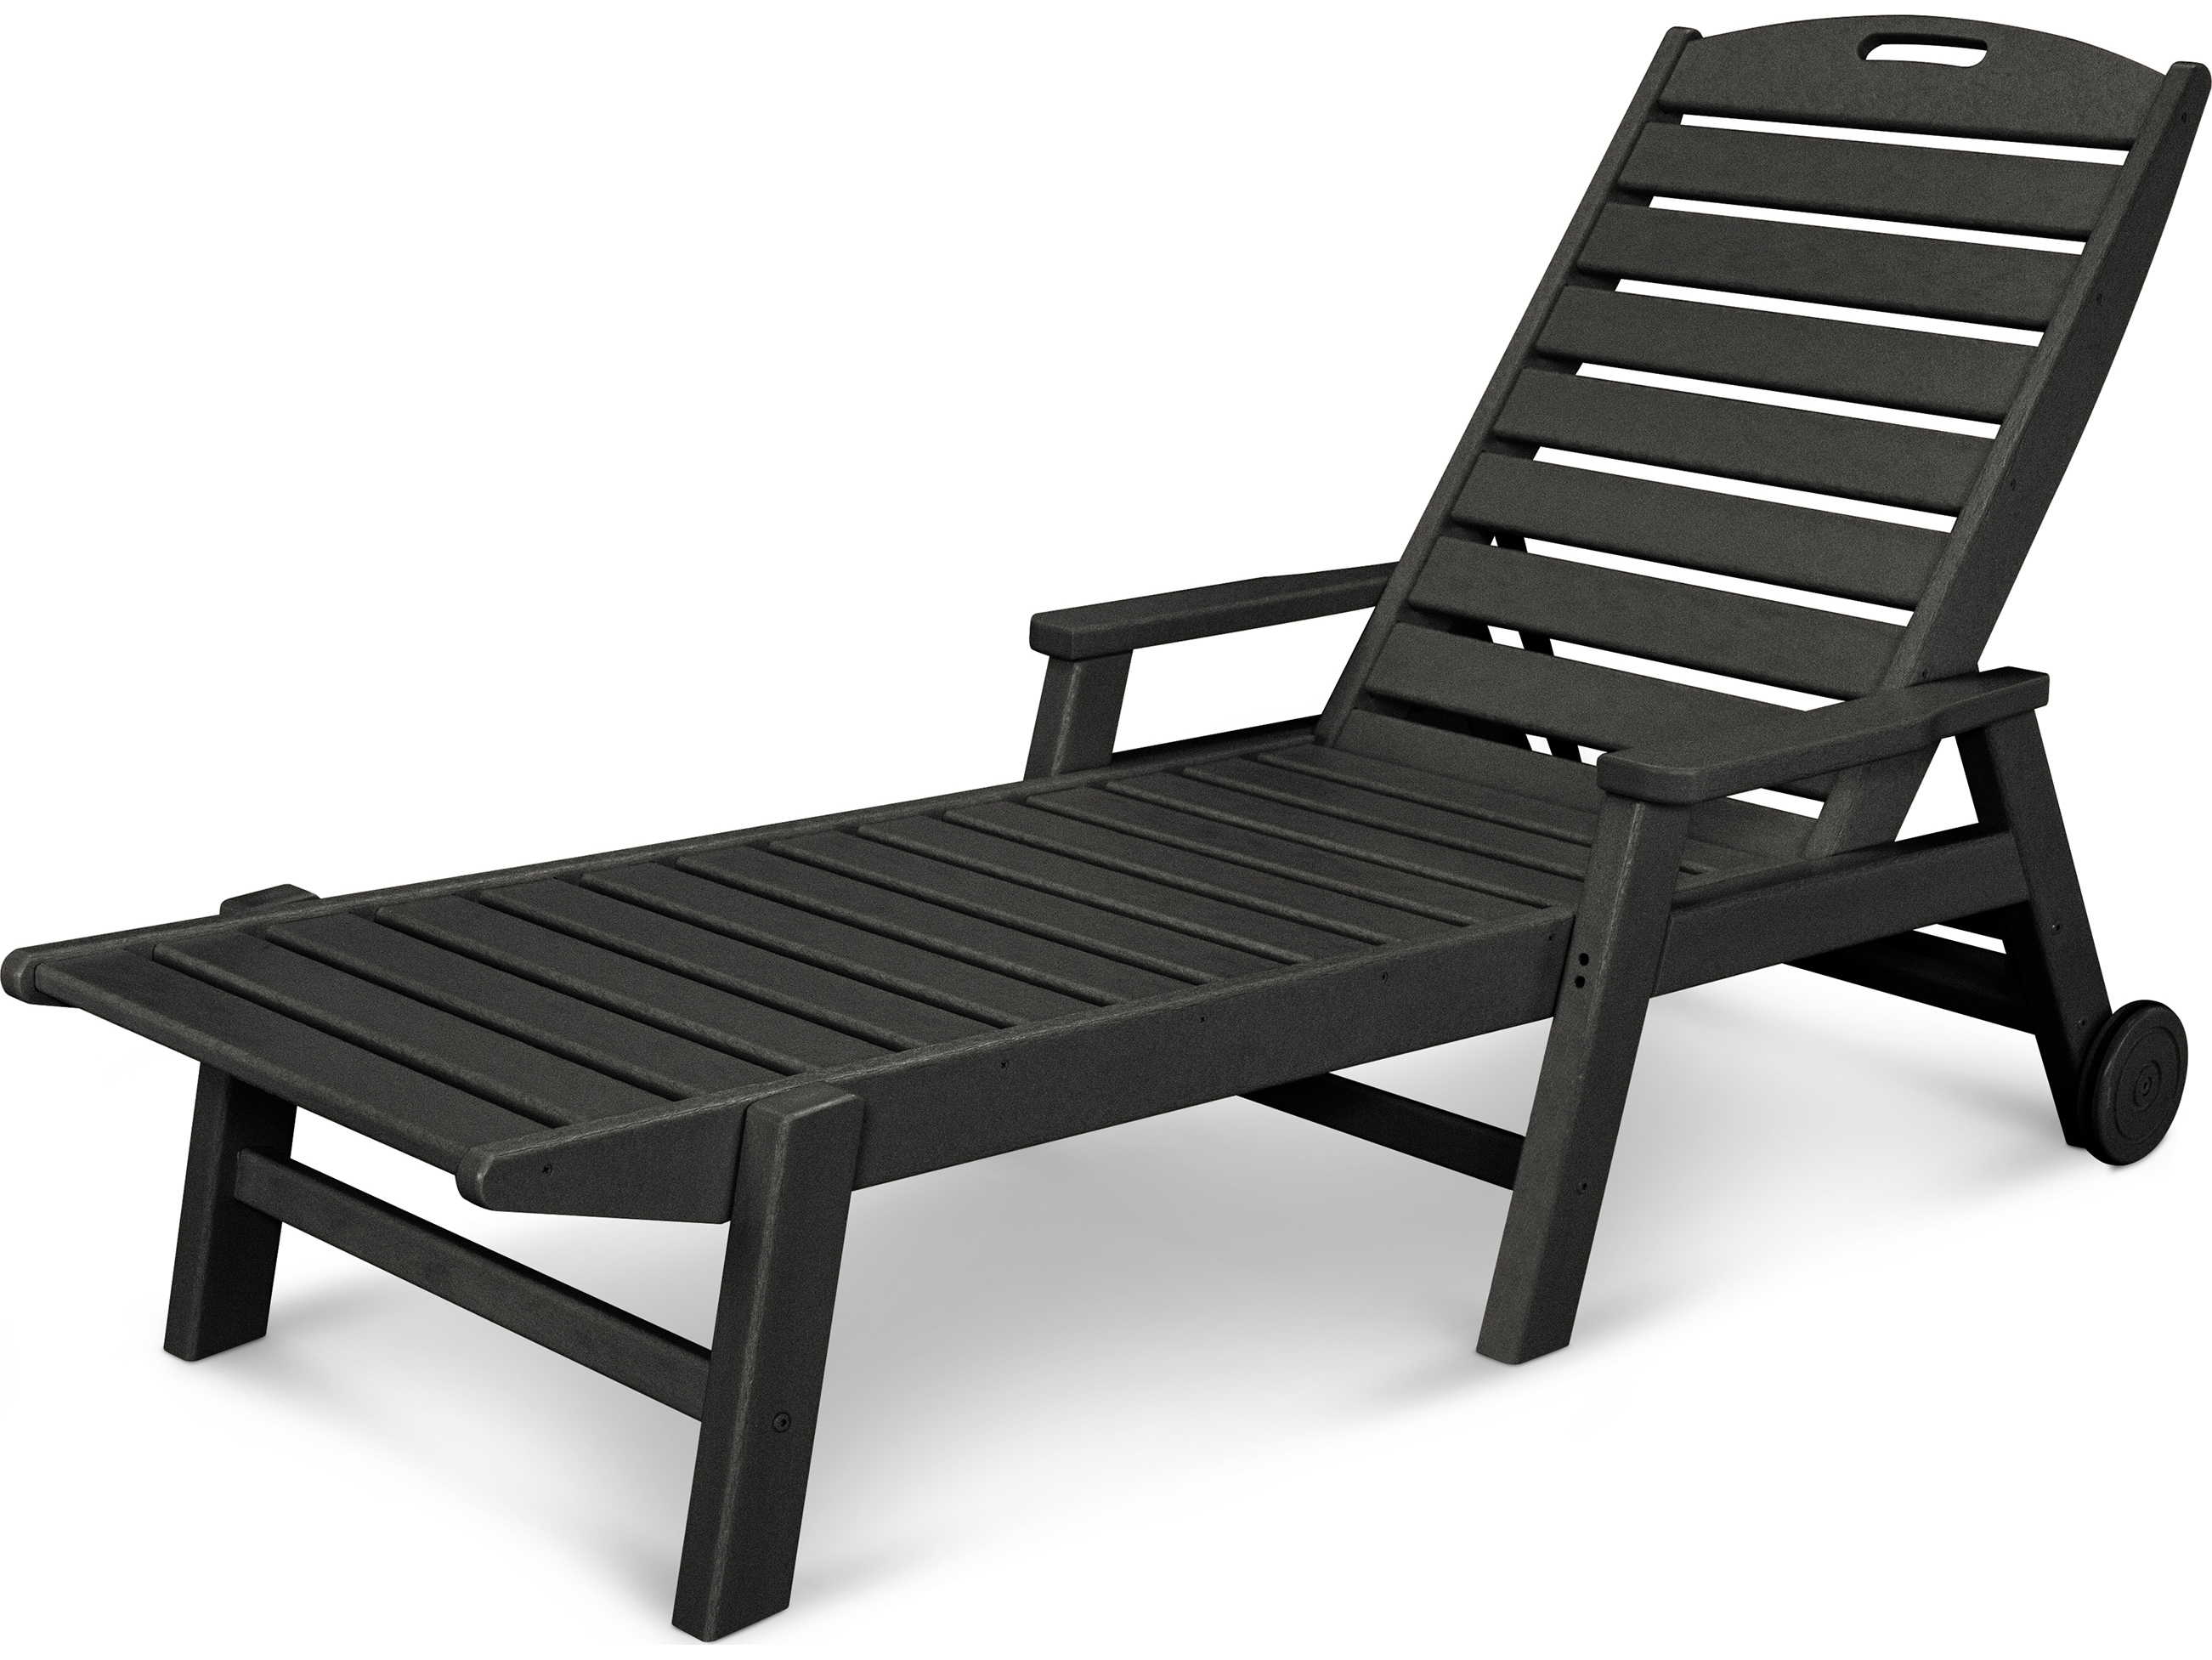 Patiofurniturebuy com polywood nautical stackable chaise lounge with wheels ncw2280